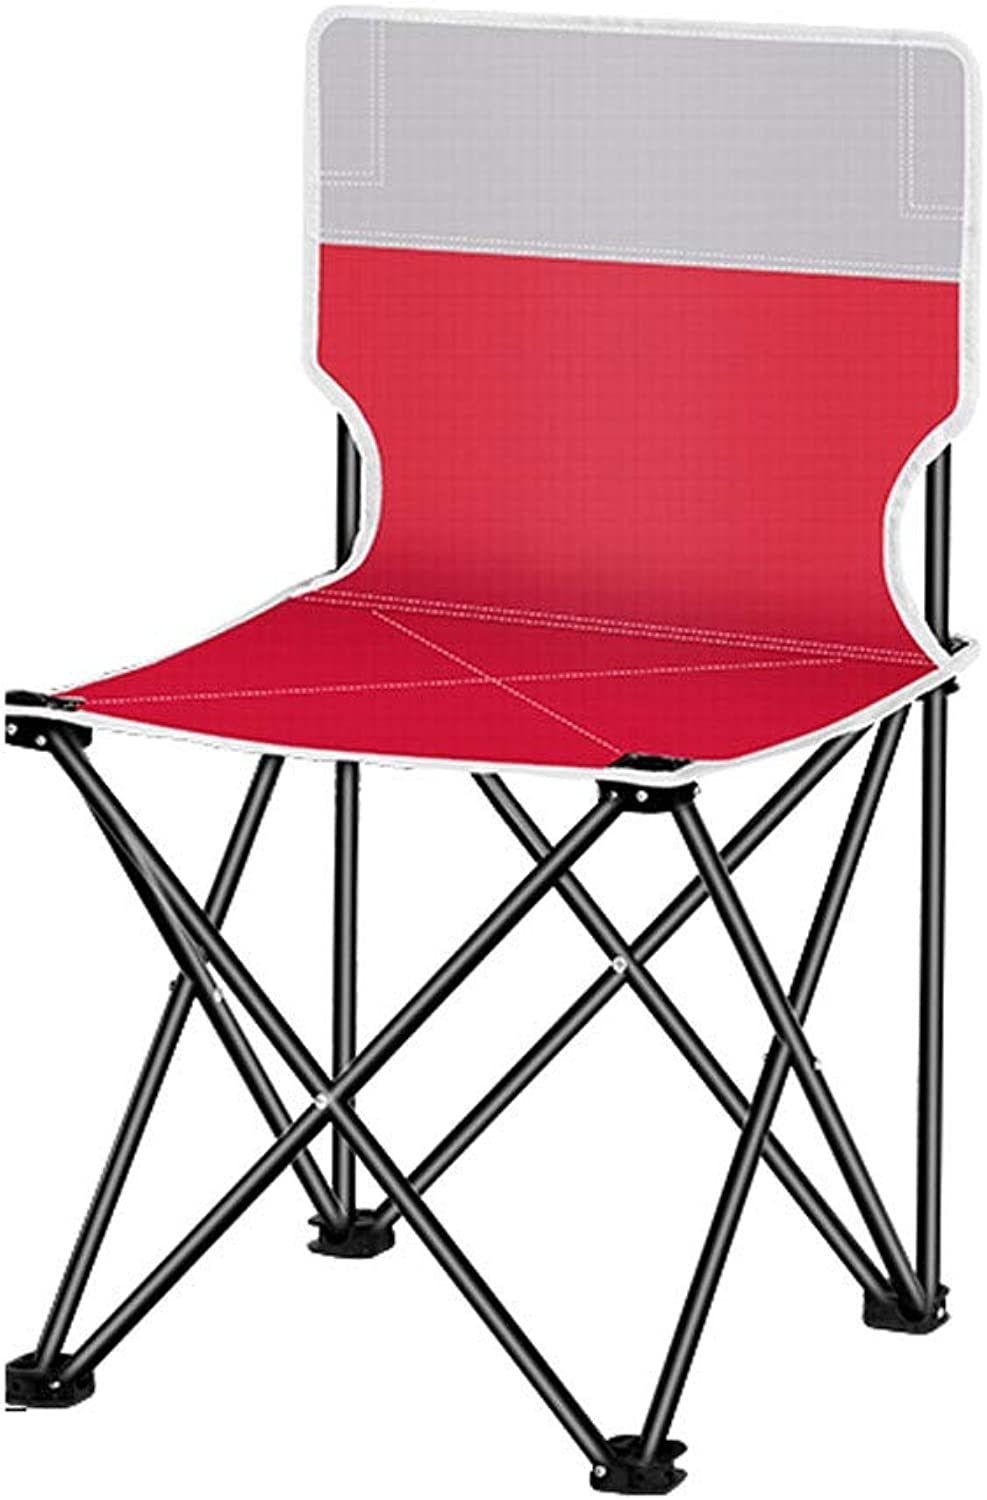 LNYJ Outdoor Folding Chair Portable Stool Painting Stool Portable Small Maza Beach Fishing Chair Camping Picnic Indoor Household Chair Strong Bearing Capacity (color   Red, Size   Medium)